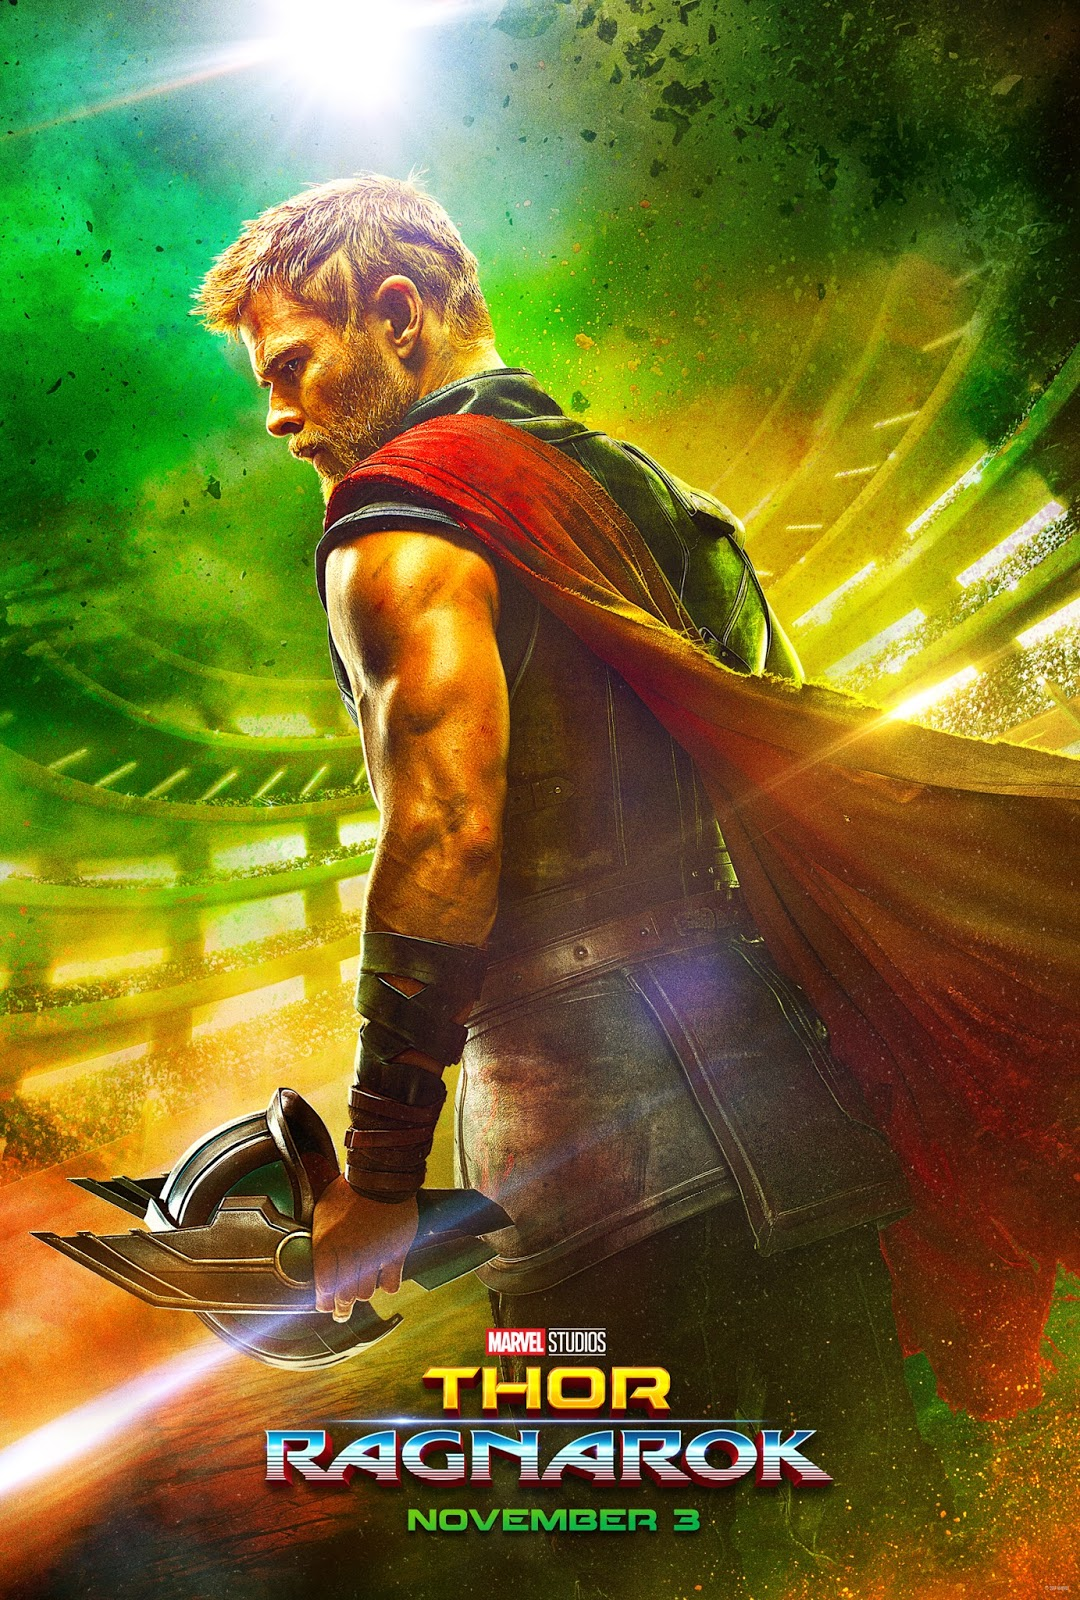 Newly Released THOR:RAGNAROK Poster & Trailer